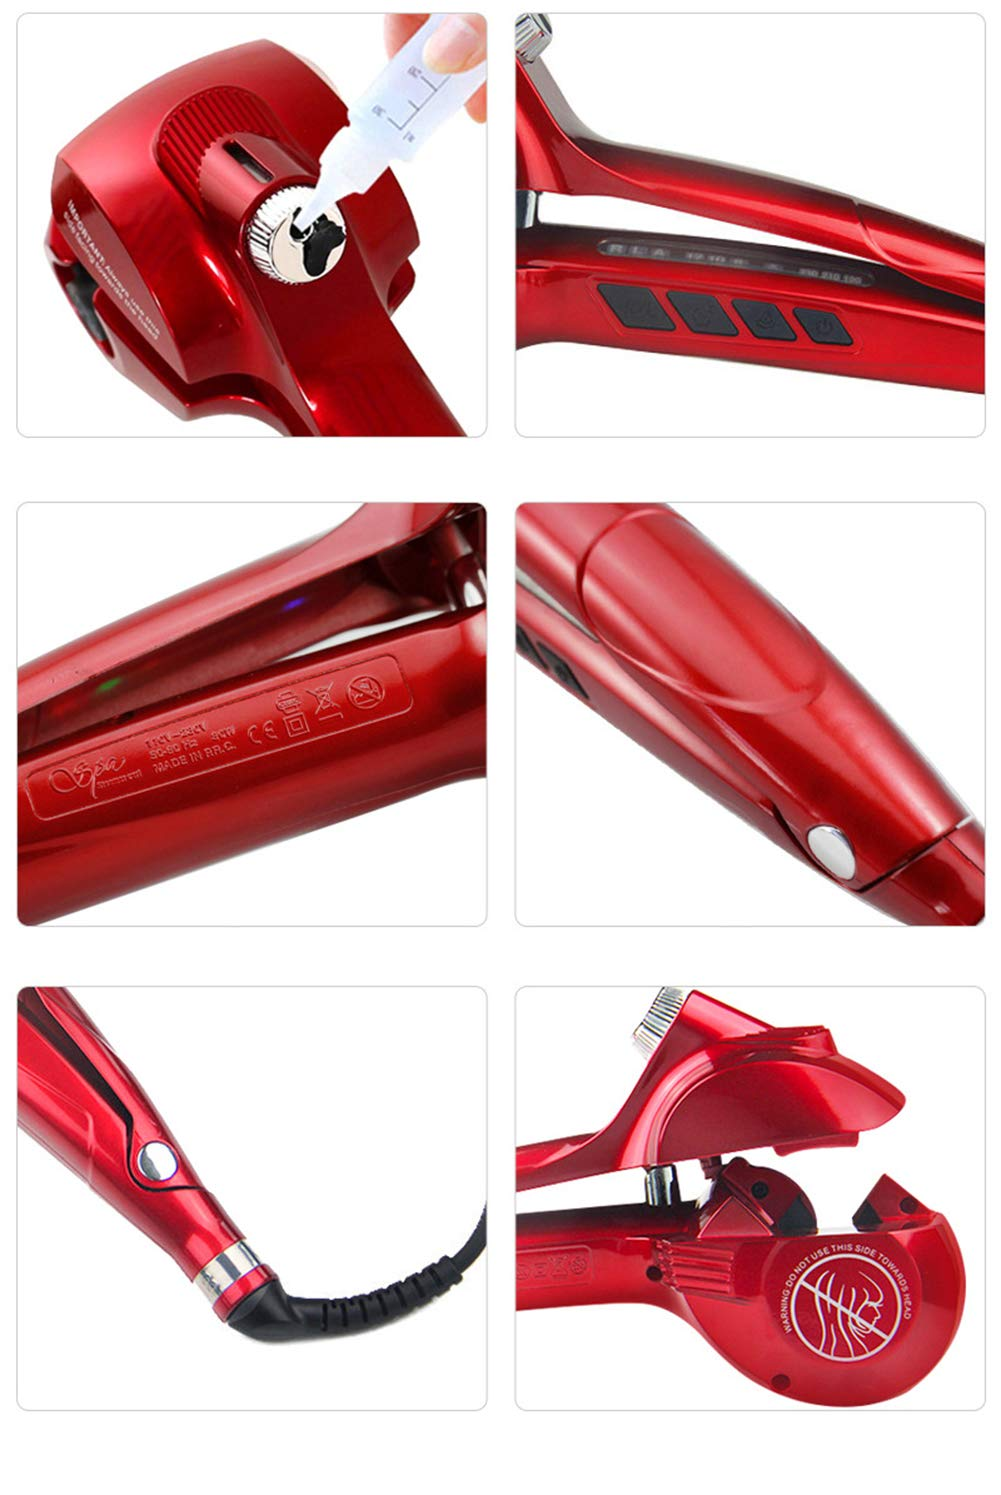 Amazon.com: Hair Curler, Professional Automatic Steam Ceramic Curling Wand, Auto Rotating Spray Steamer Curler- Spiral Hair Curling Iron Styling Tool,Red: ...